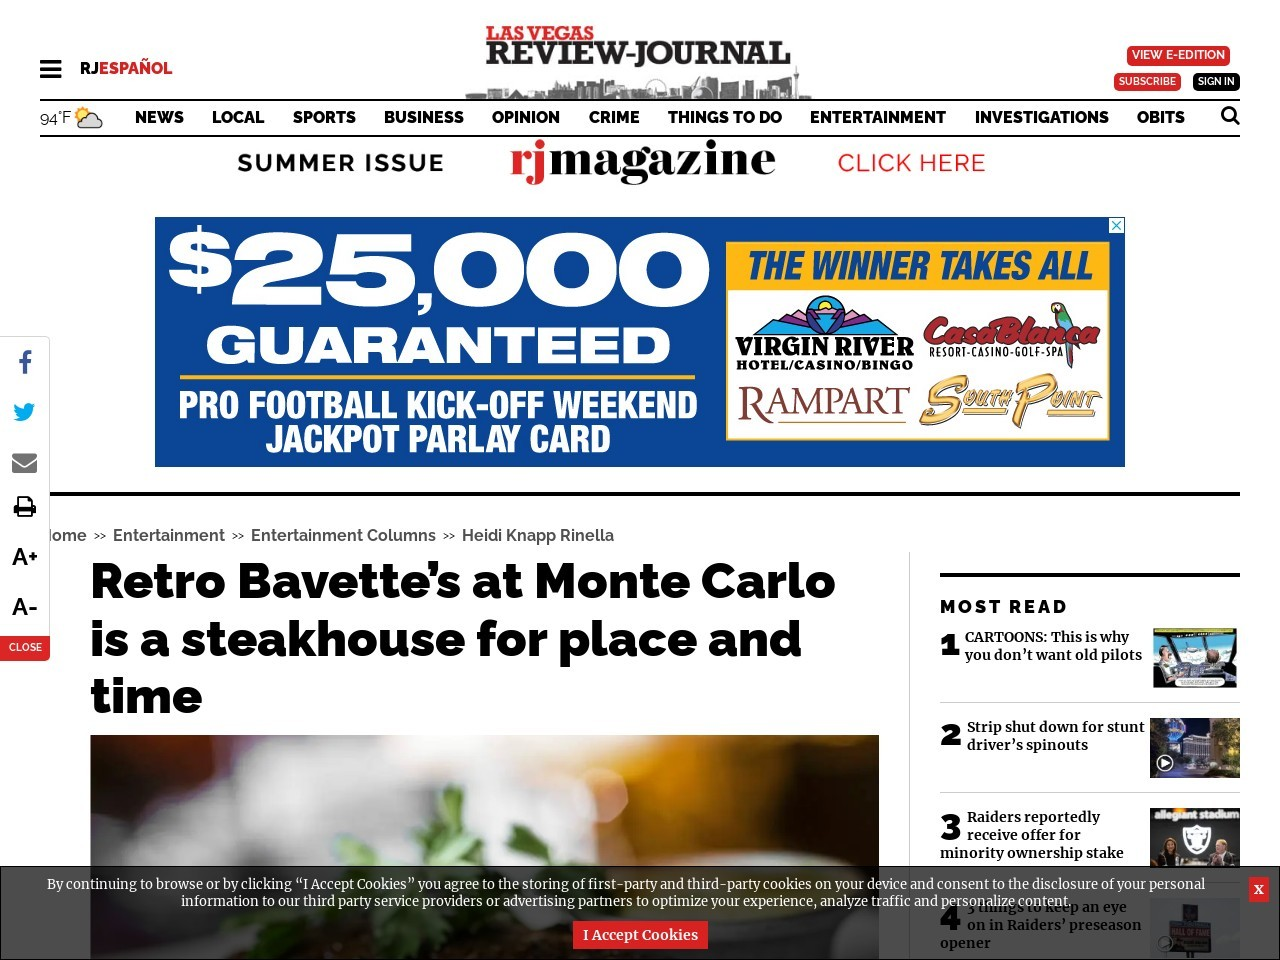 Retro Bavette's at Monte Carlo is a steakhouse for place and time